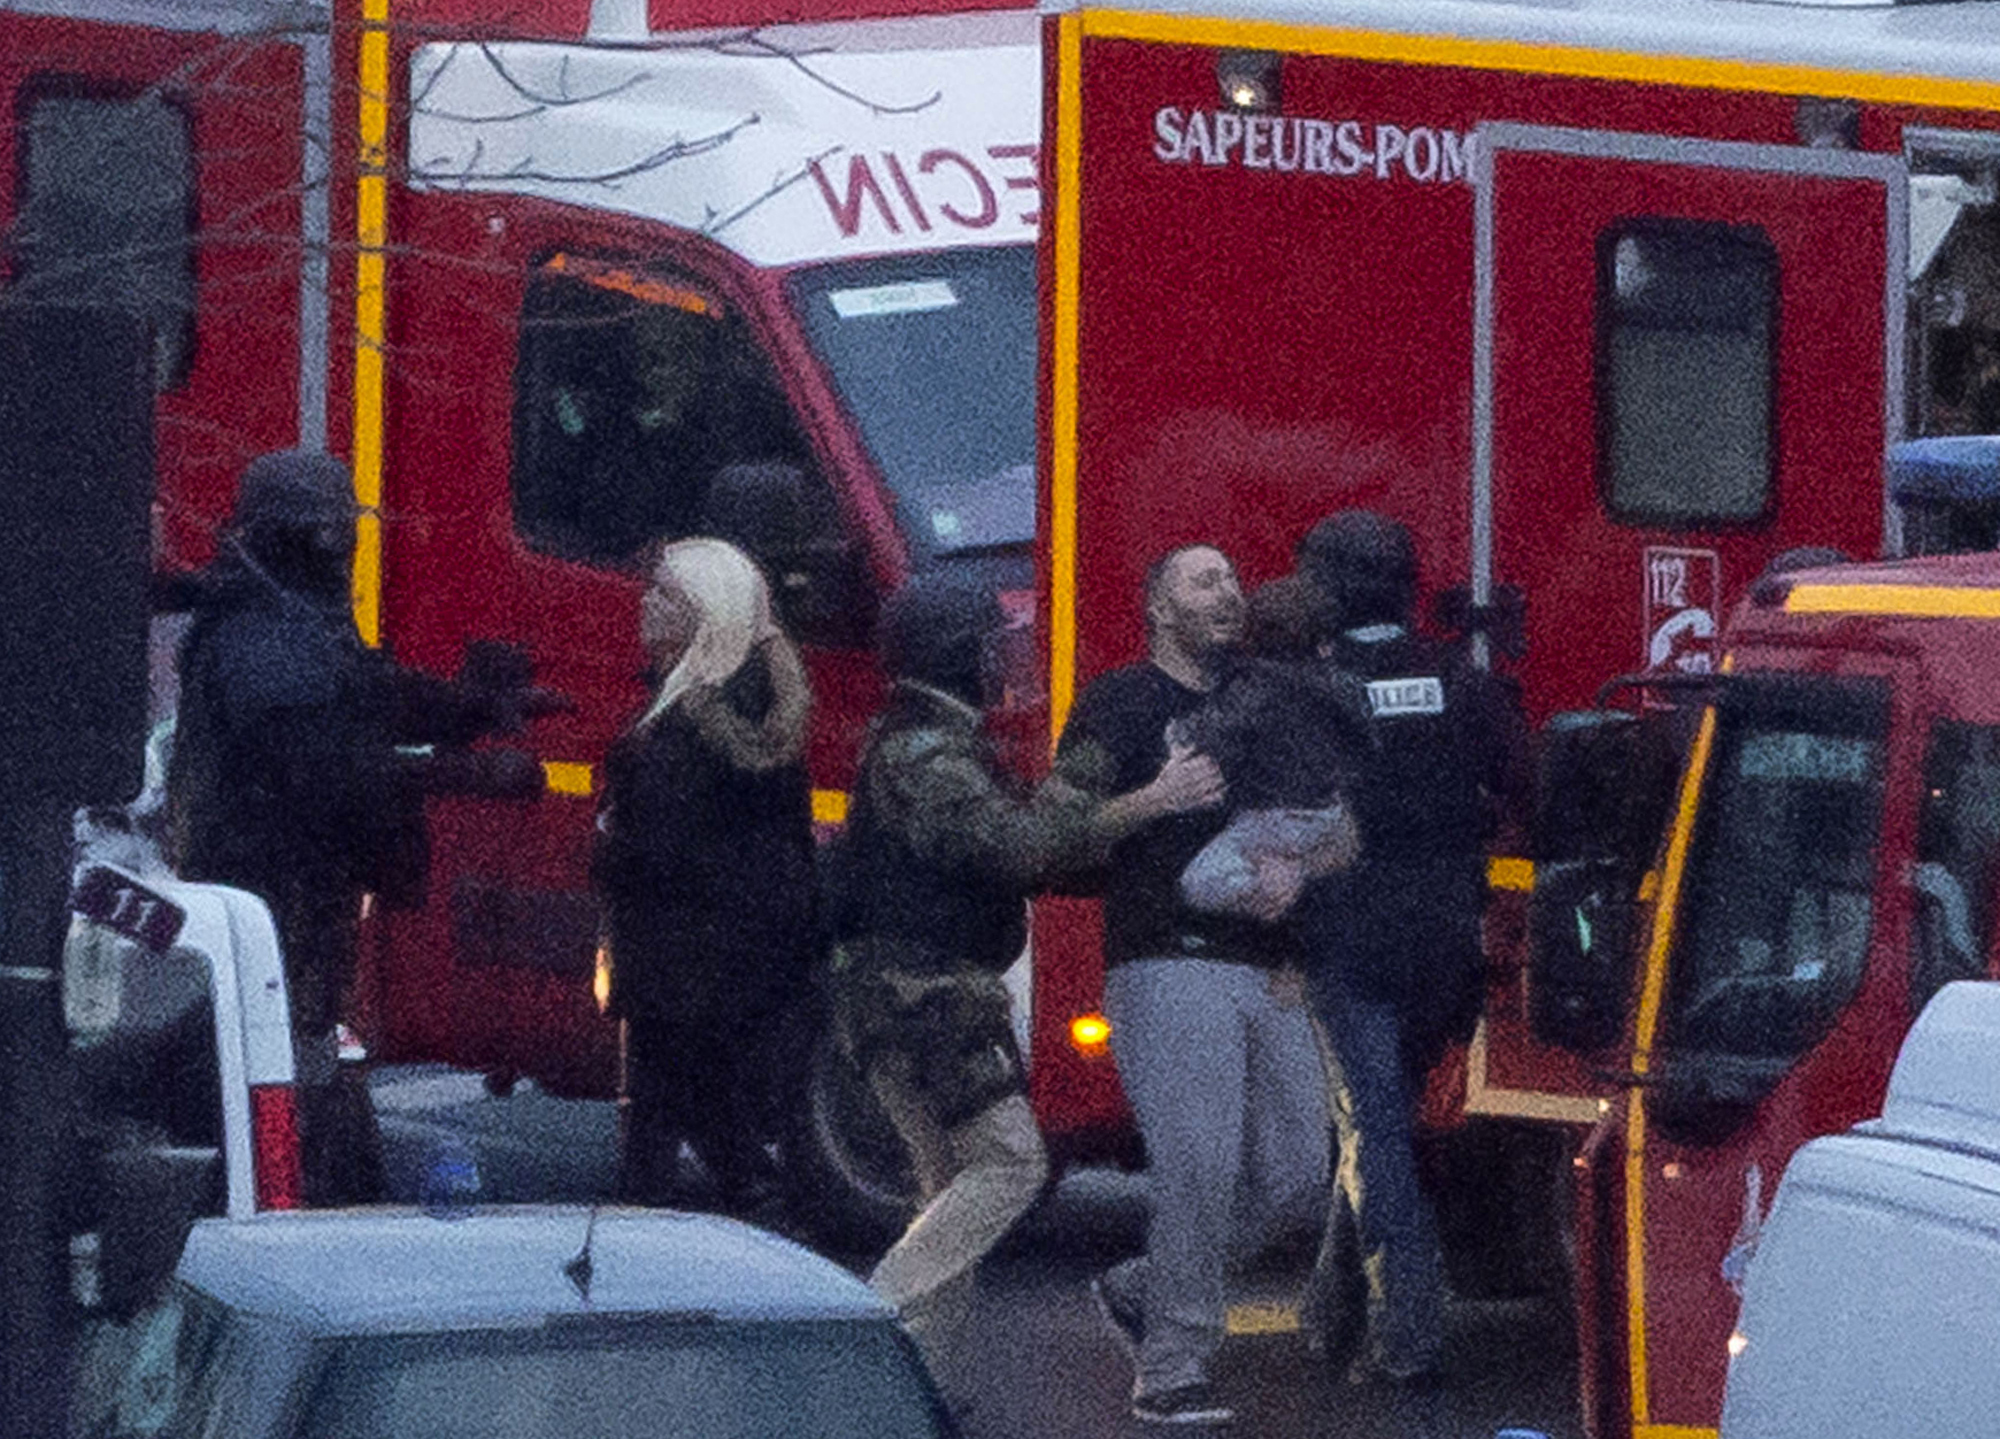 This is a Friday, Jan. 9, 2015 file photo of a security officer directs released hostages after they stormed a kosher market to end a hostage situation, Paris. Explosions and gunshots were heard as police forces stormed a kosher grocery in Paris where a gunman was holding at least five people hostage. At the kosher supermarket in Paris, a quick-thinking Muslim employee hides several Jewish shoppers in the basement before sneaking out to brief police on the hostage-taker upstairs. (AP Photo/Michel Euler, File)